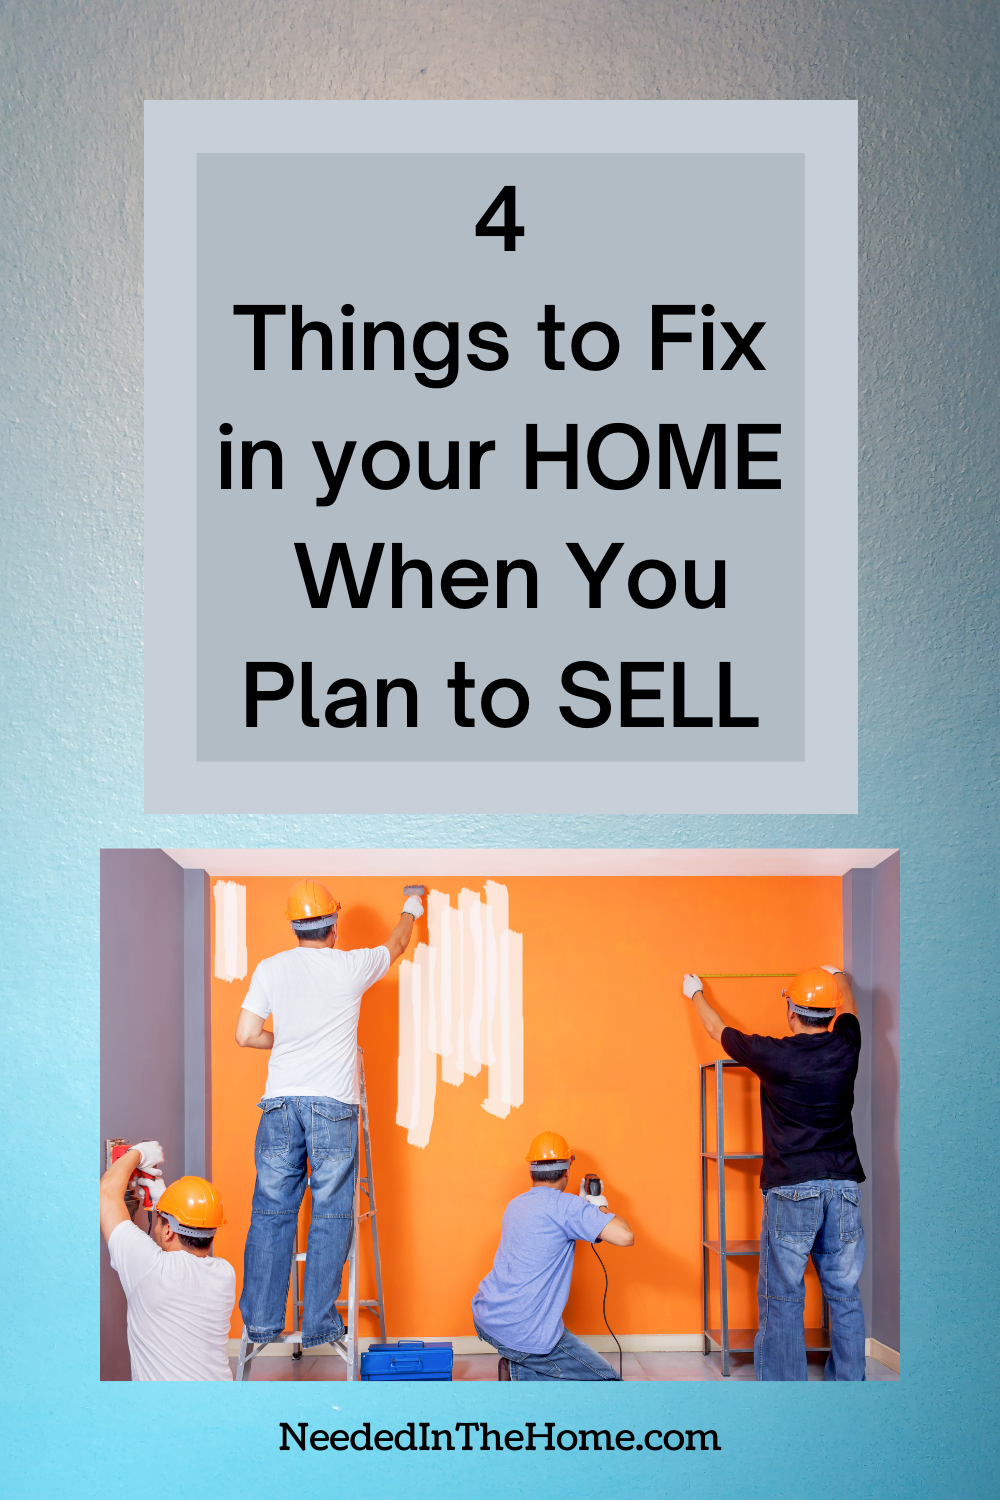 pinterest-pin-description 4 things to fix in your home when you plan to sell men home repair painting ladder hard hats neededinthehome